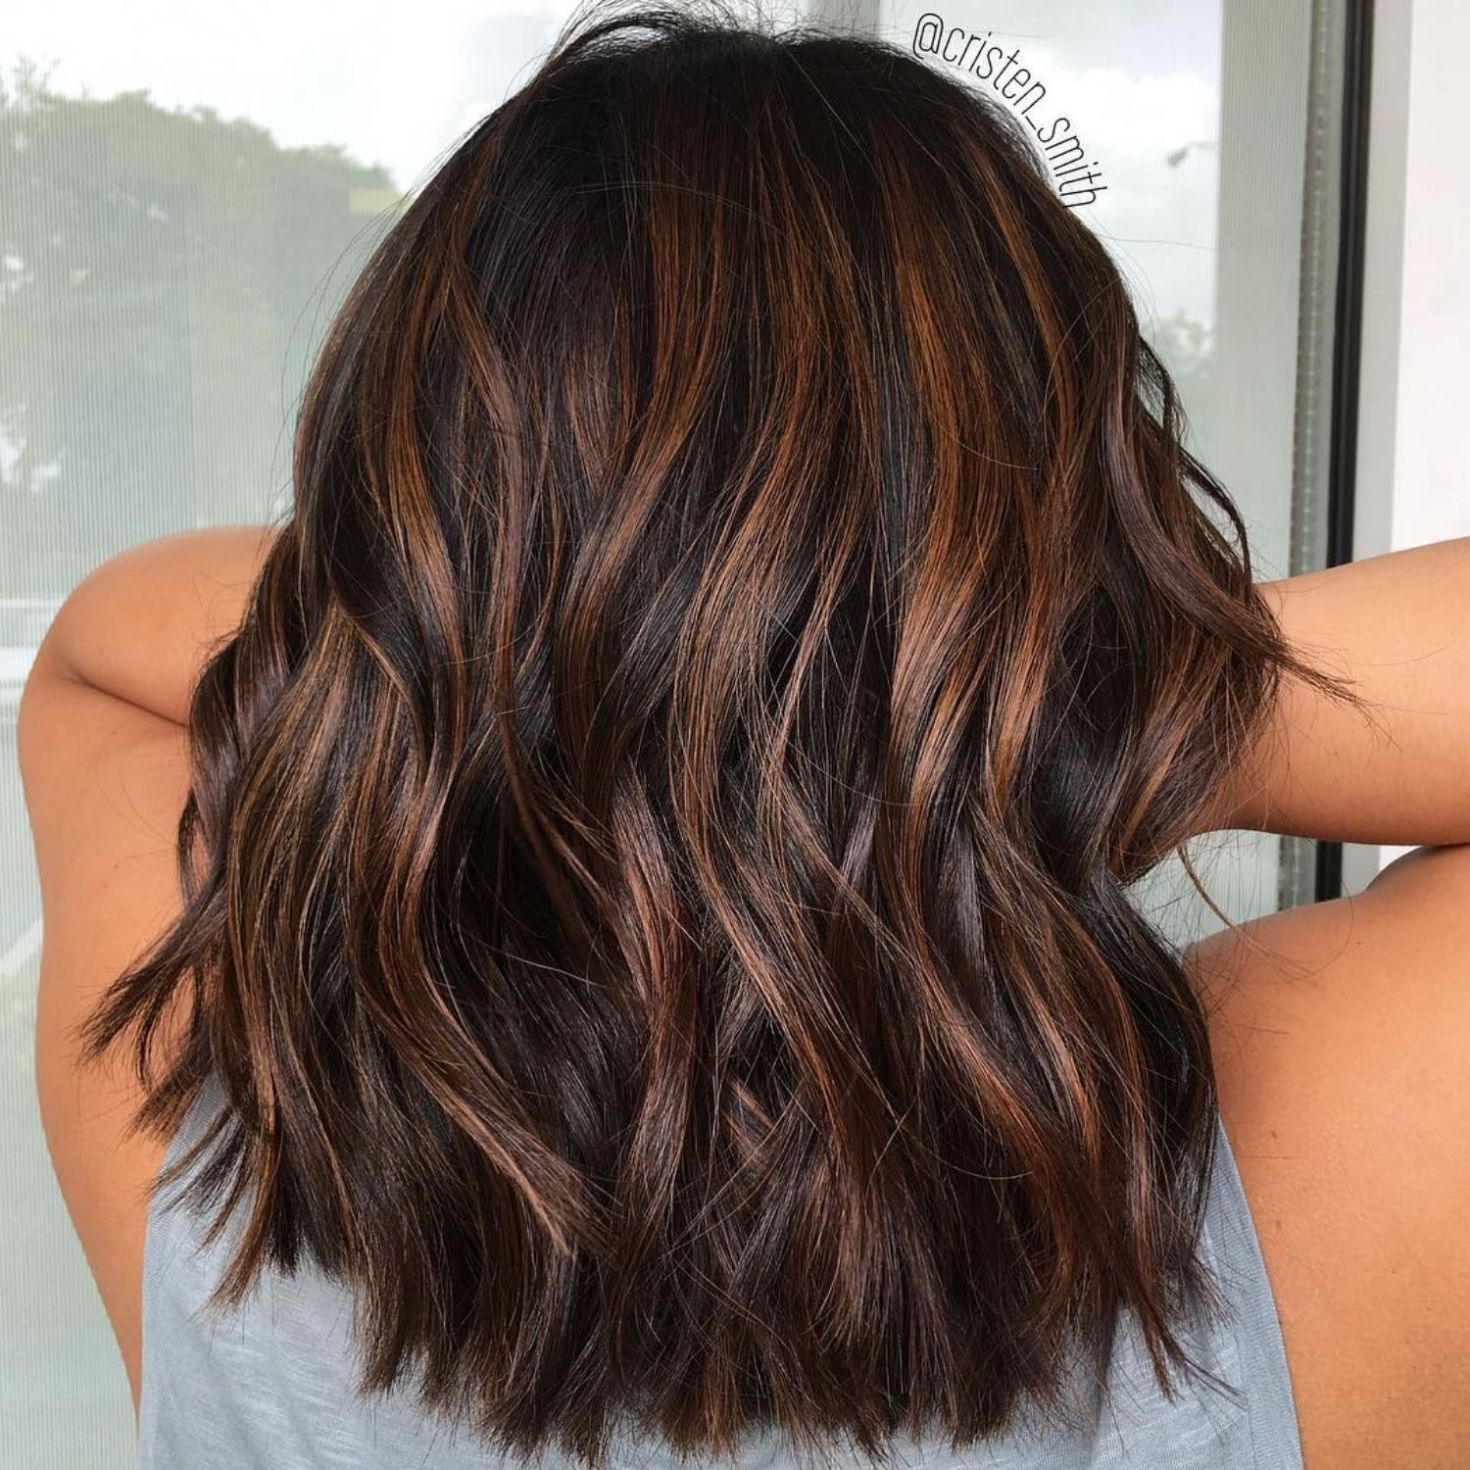 Rich Chocolate Hair With Copper Highlights Brown Hair Balayage Brown Ombre Hair Hair Styles